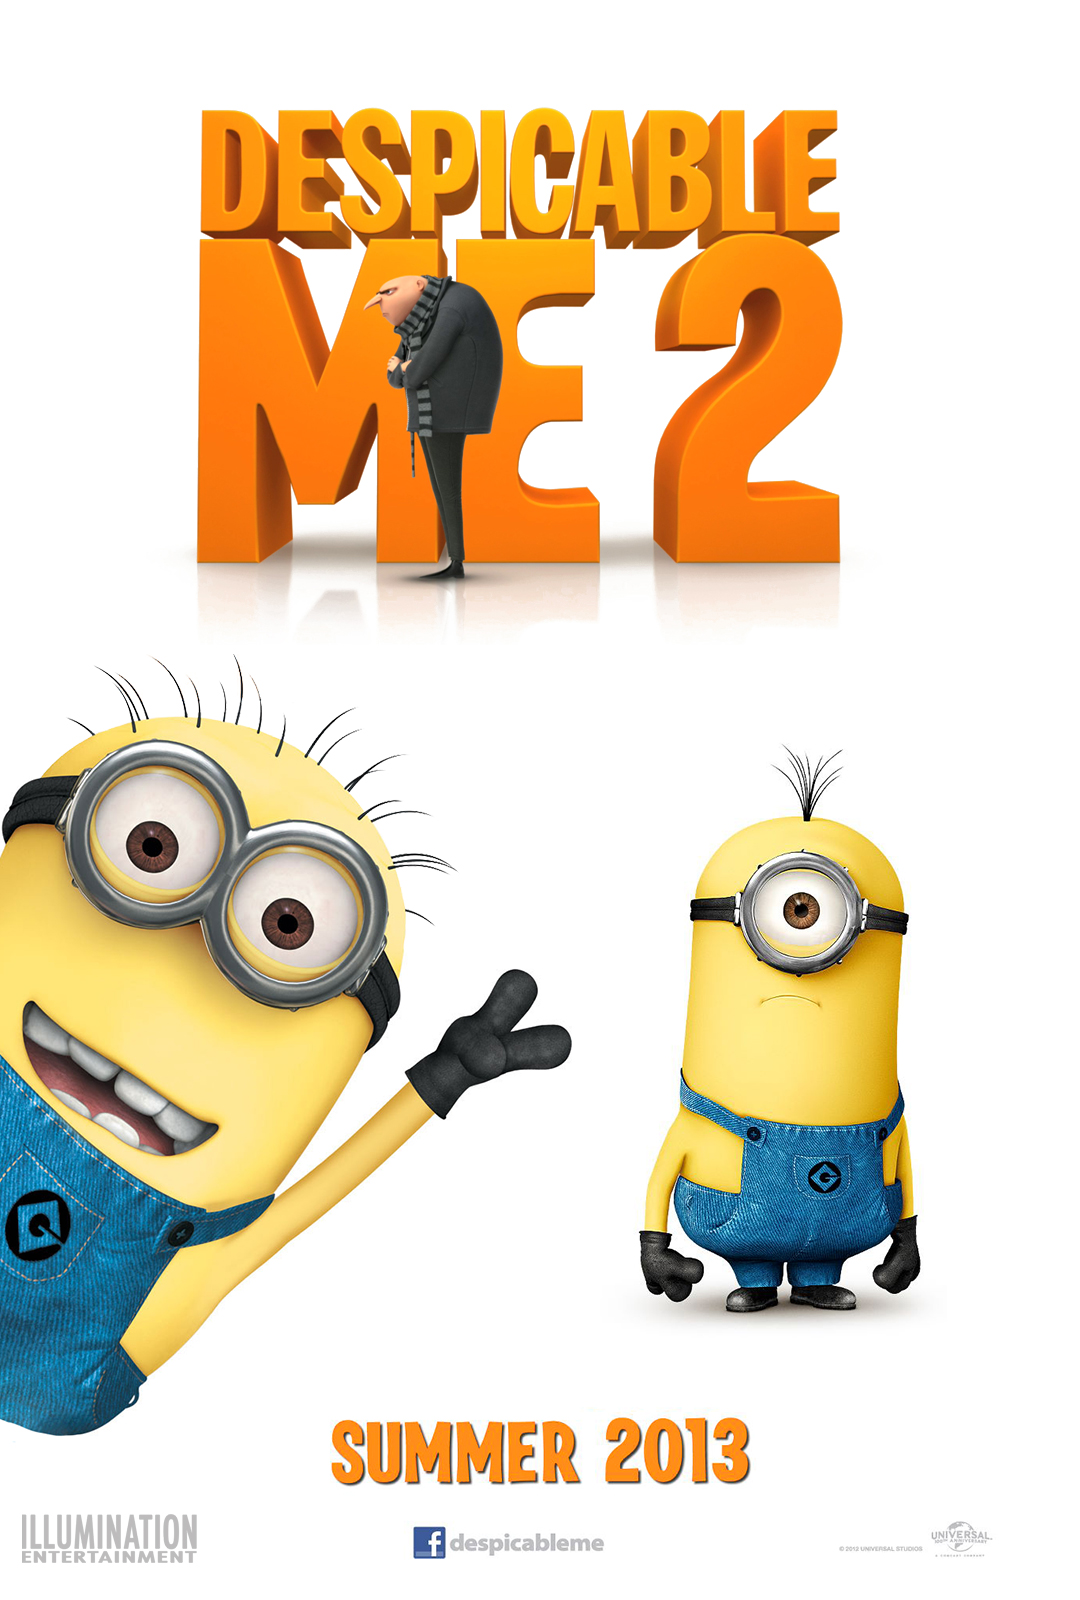 TODAY I WATCHED (TV-series, Movies, Cinema Playlists) 2013 - Page 4 176.image_.despicable-me-2-poster